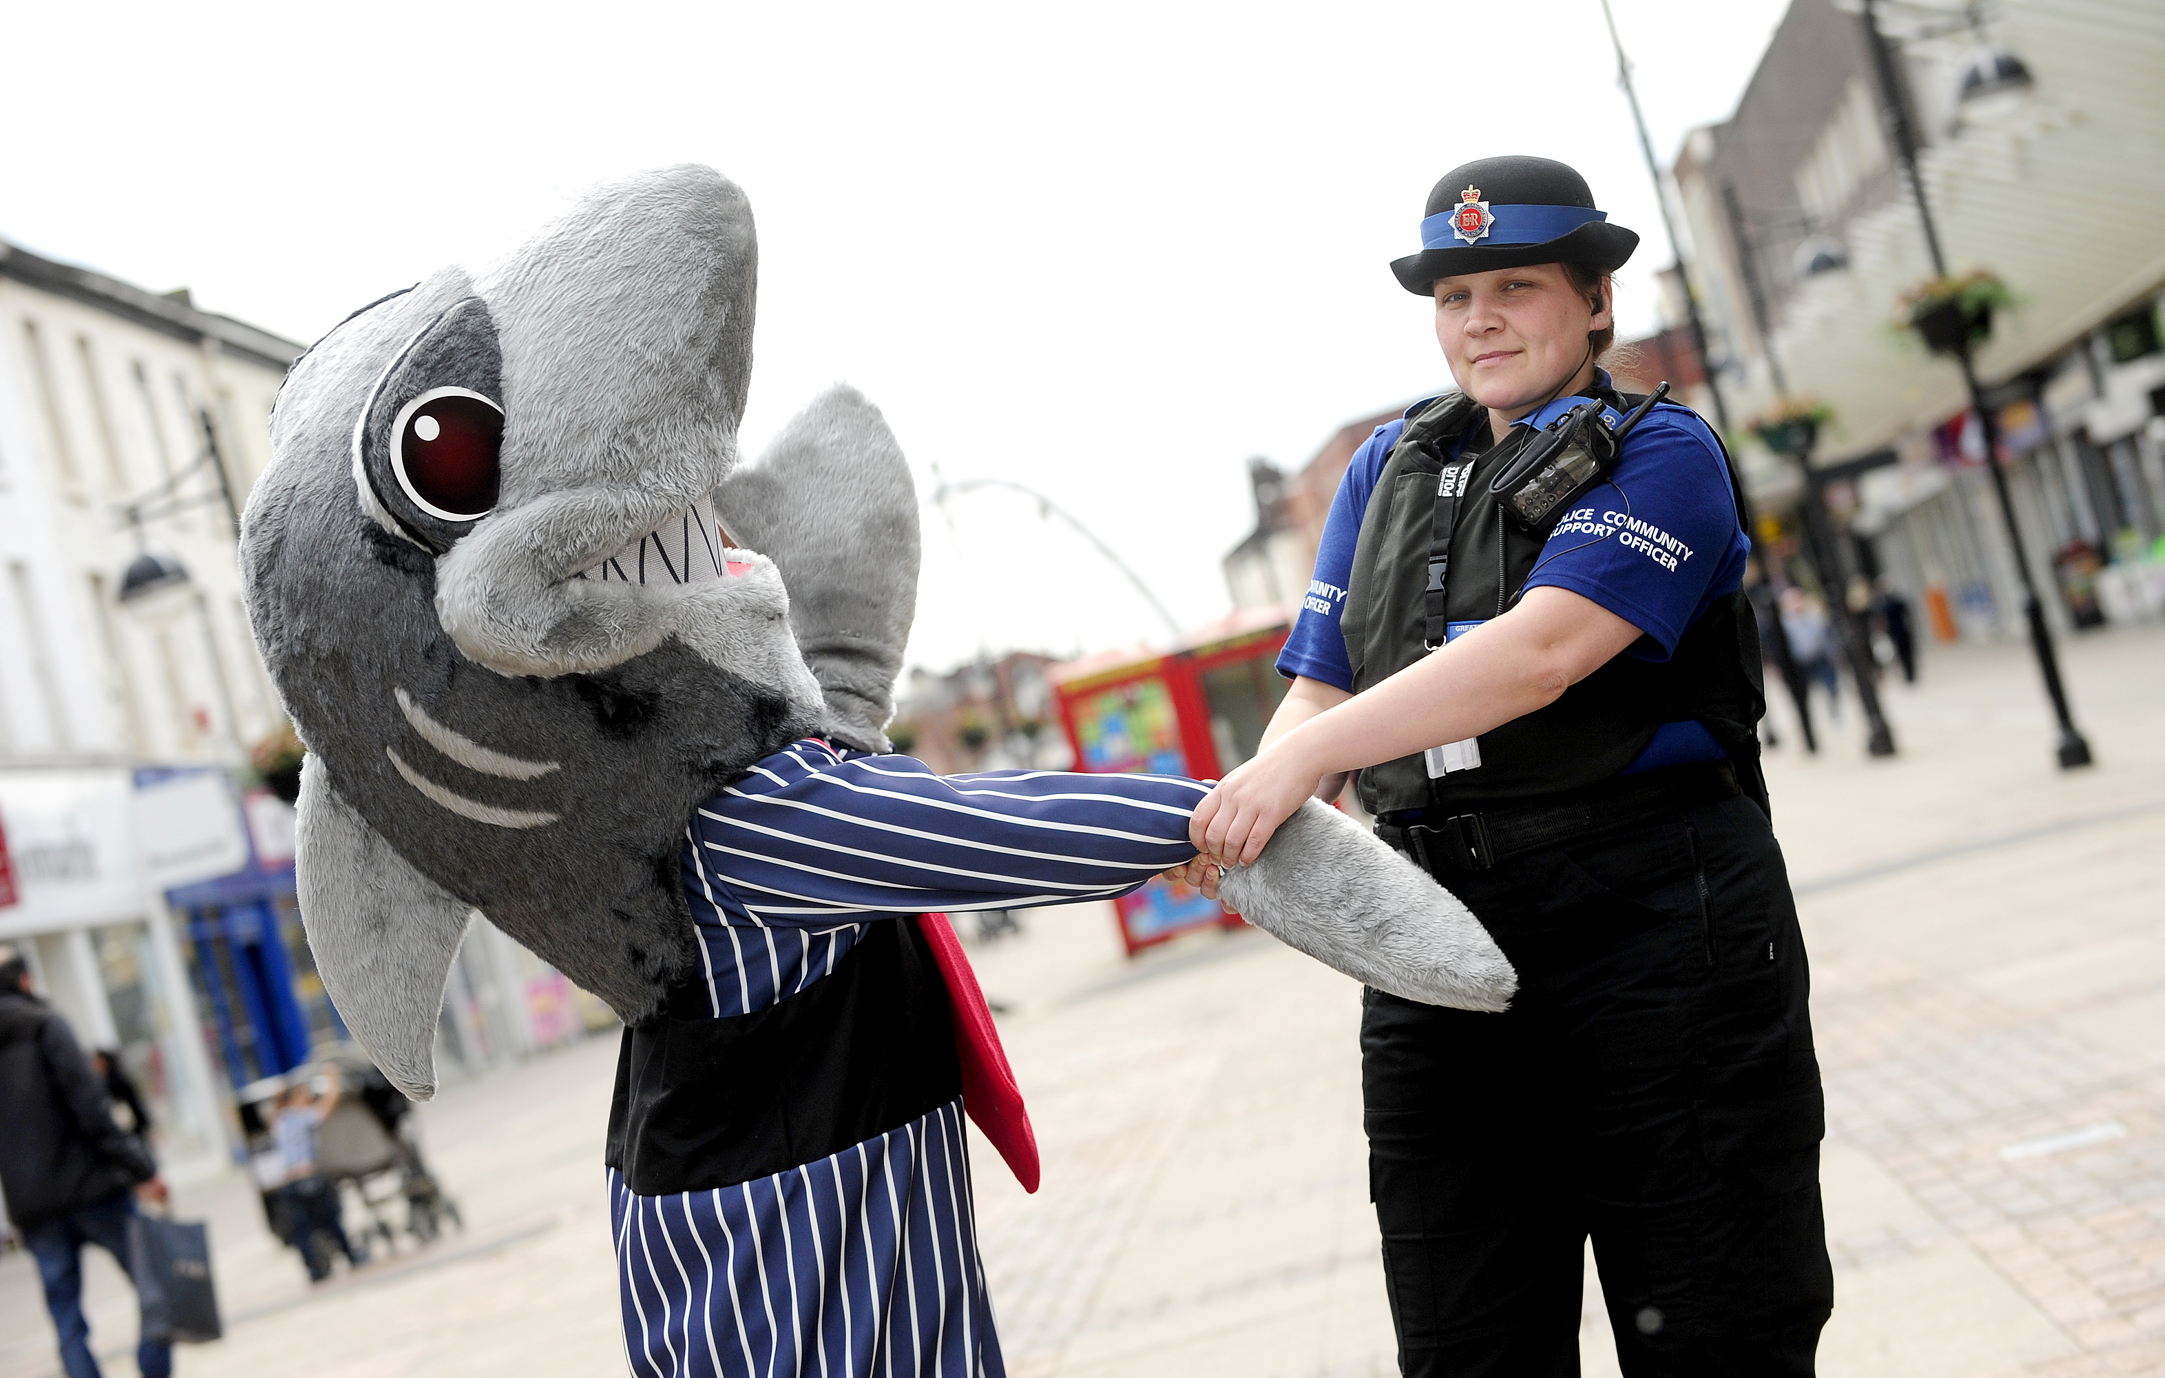 Police stepping up efforts to tackle Bolton's loan sharks   The Bolton News